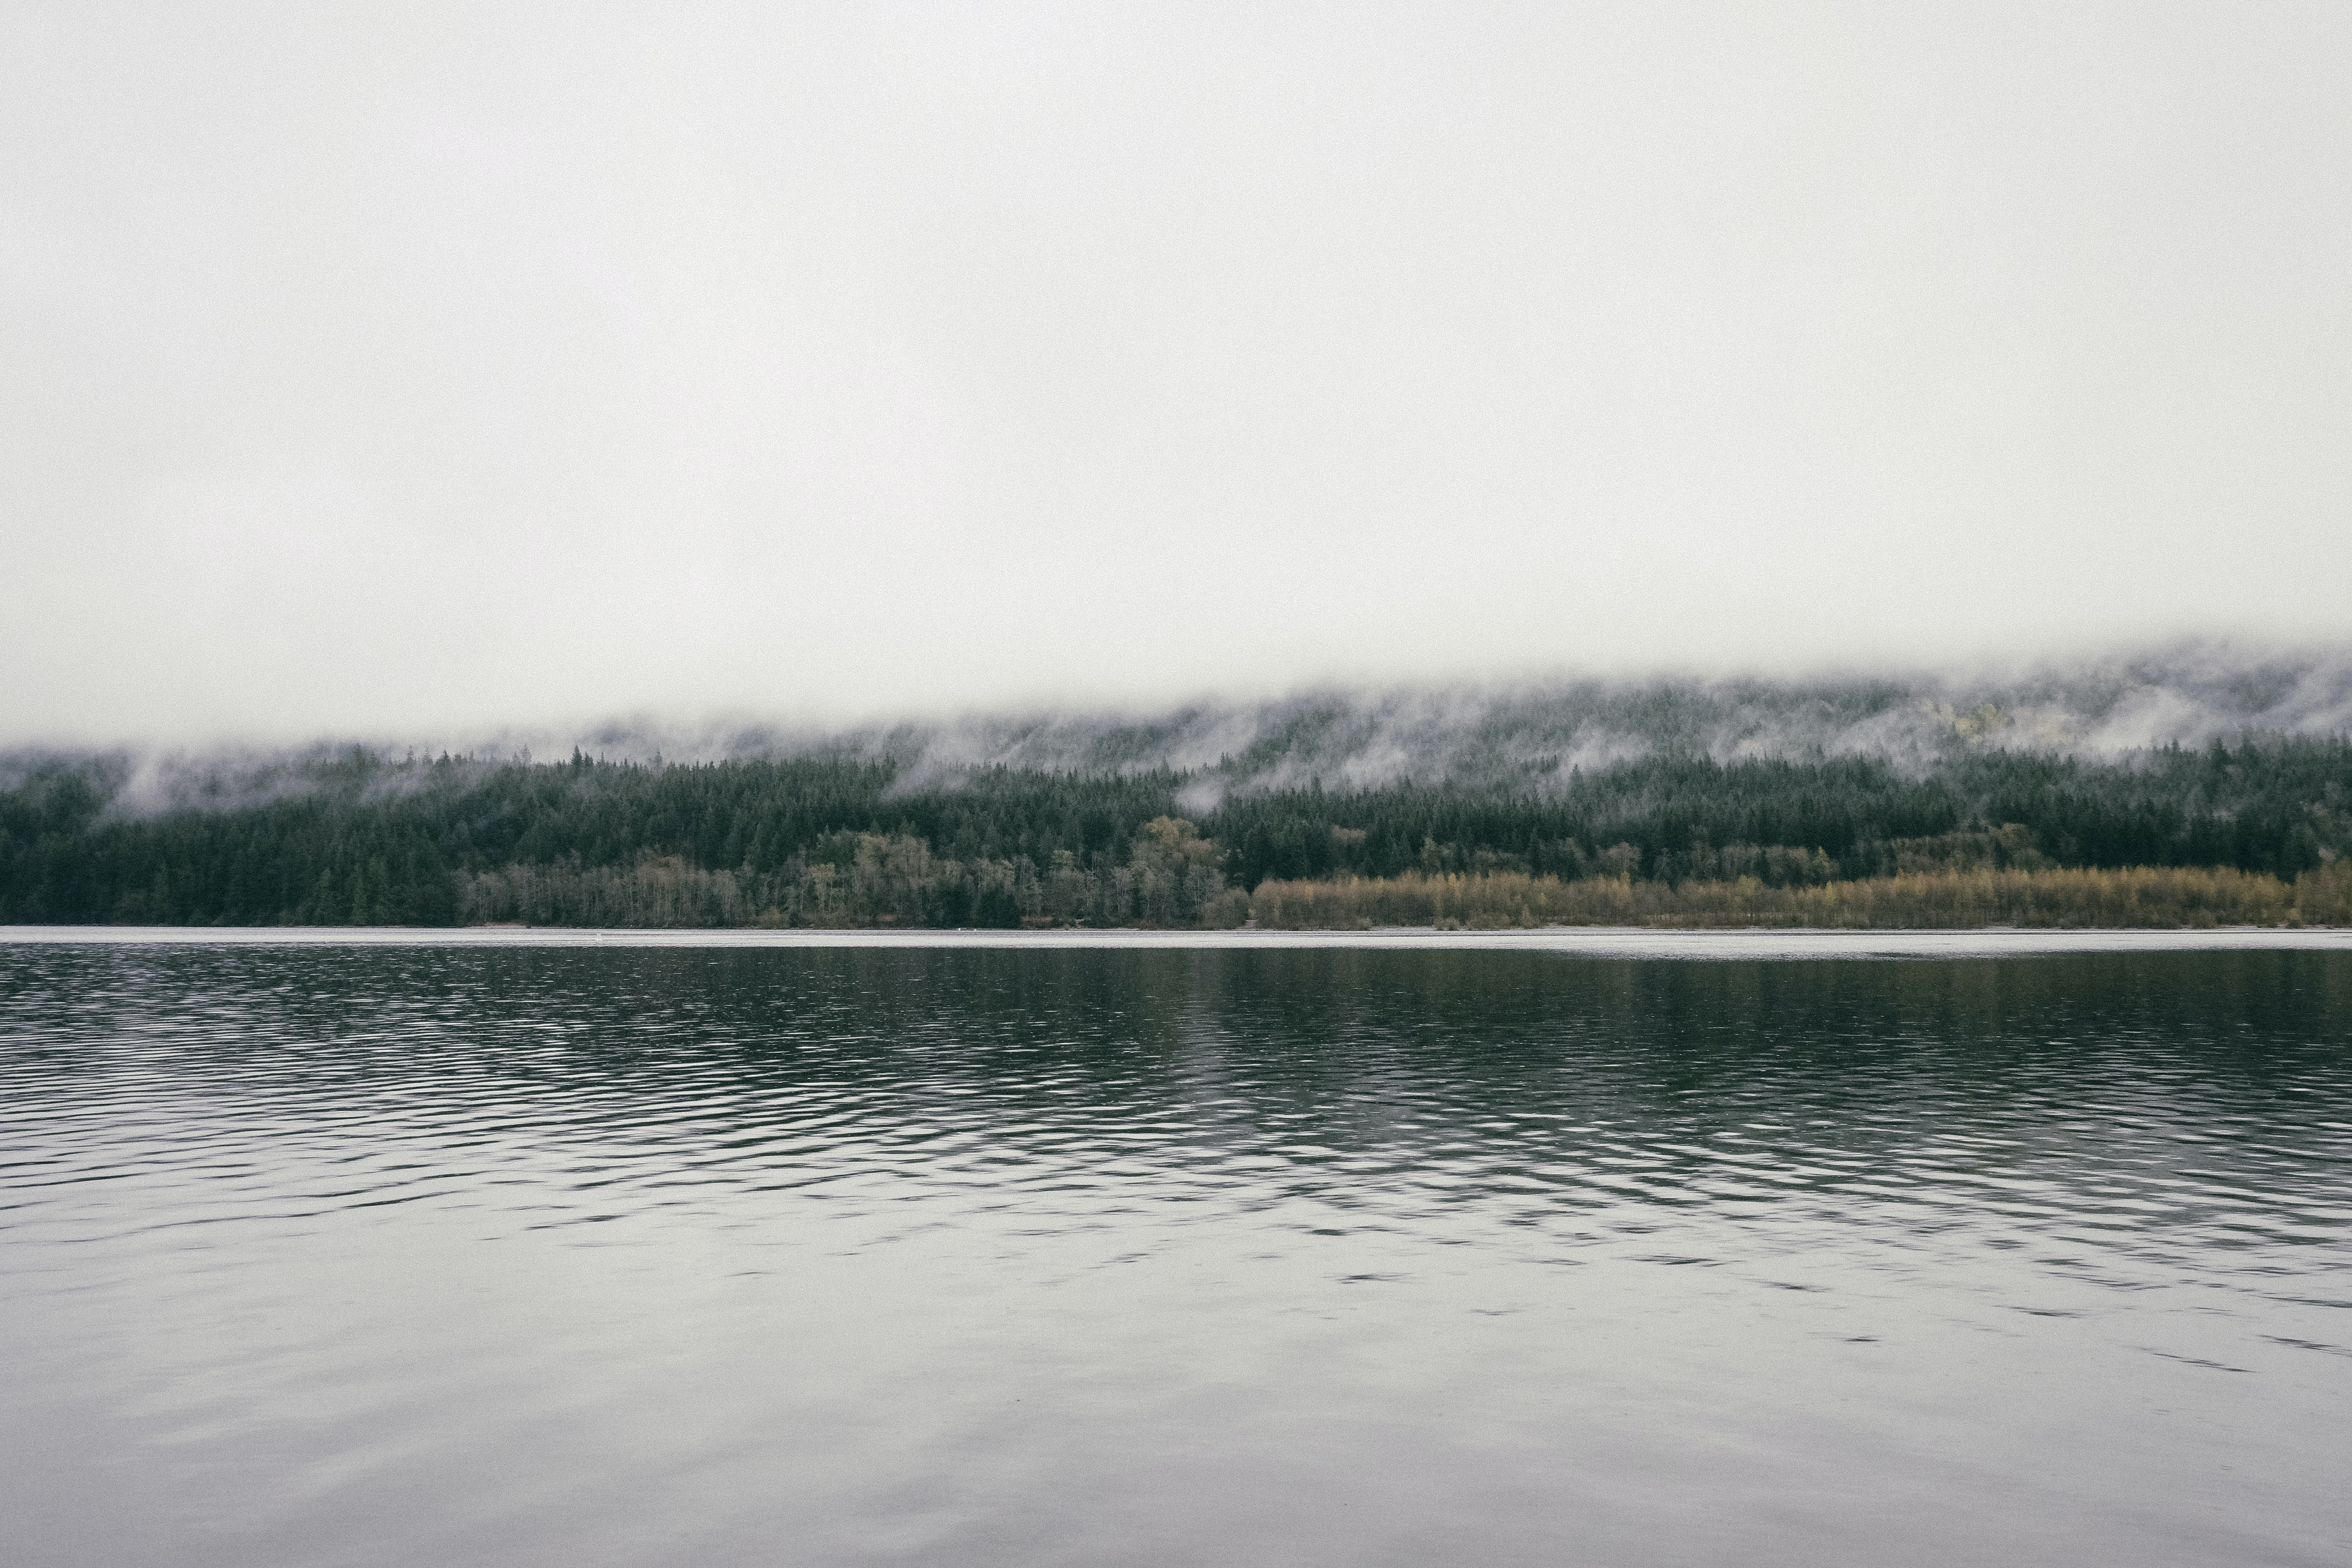 A view of a lake and an evergreen forest enveloped in a dense fog on the other side